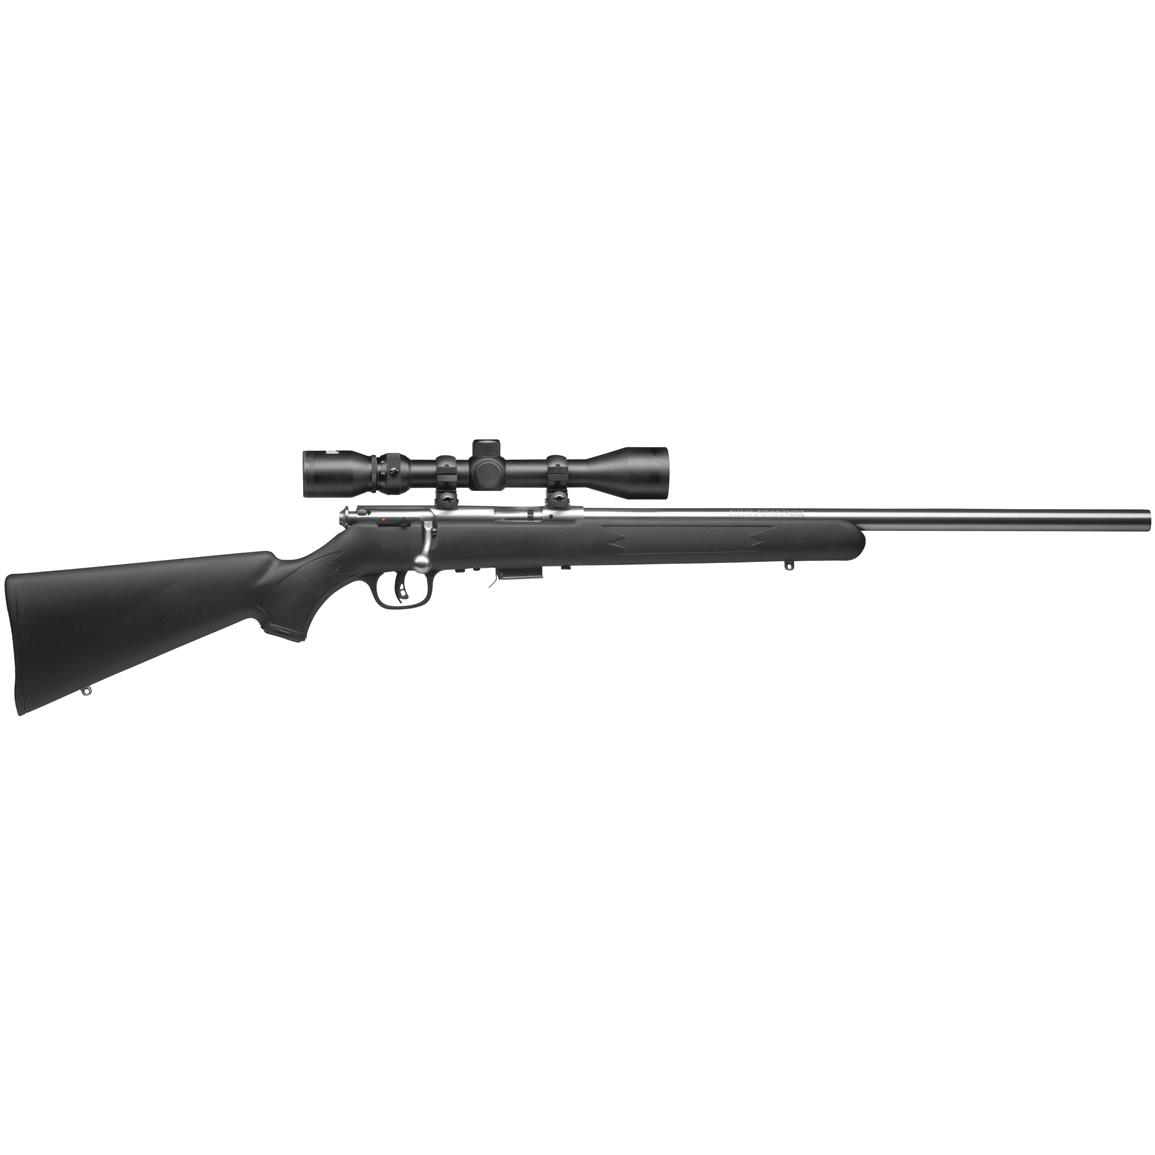 "Savage 93 FVSS XP, Bolt Action, .22 WMR, Rimfire, 21"" Barrel, 4x32mm Scope, 5+1 Rounds"